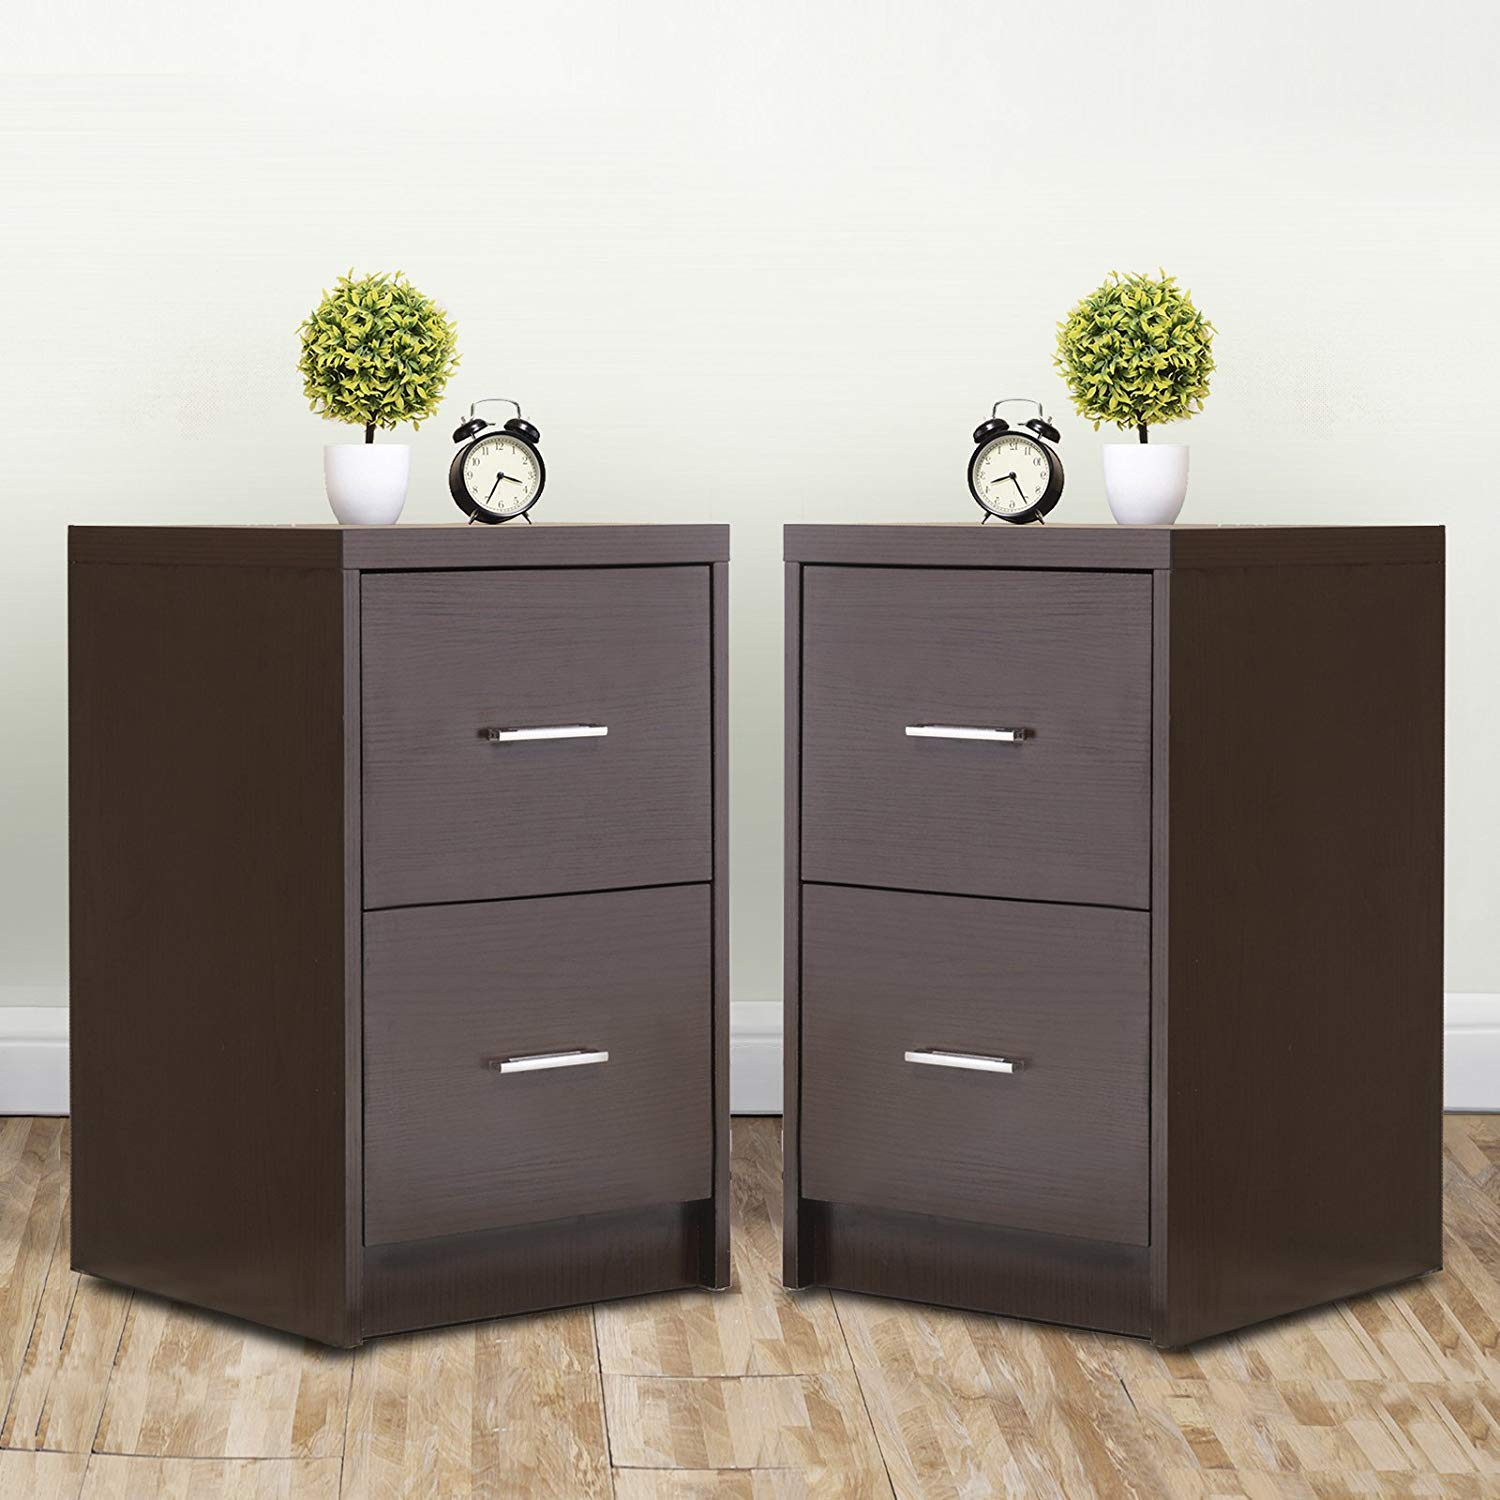 Mecor Nightstands End Table with 2 Drawers MDF Square Accent Table Bedroom Furniture Espresso Finish,Set of 2